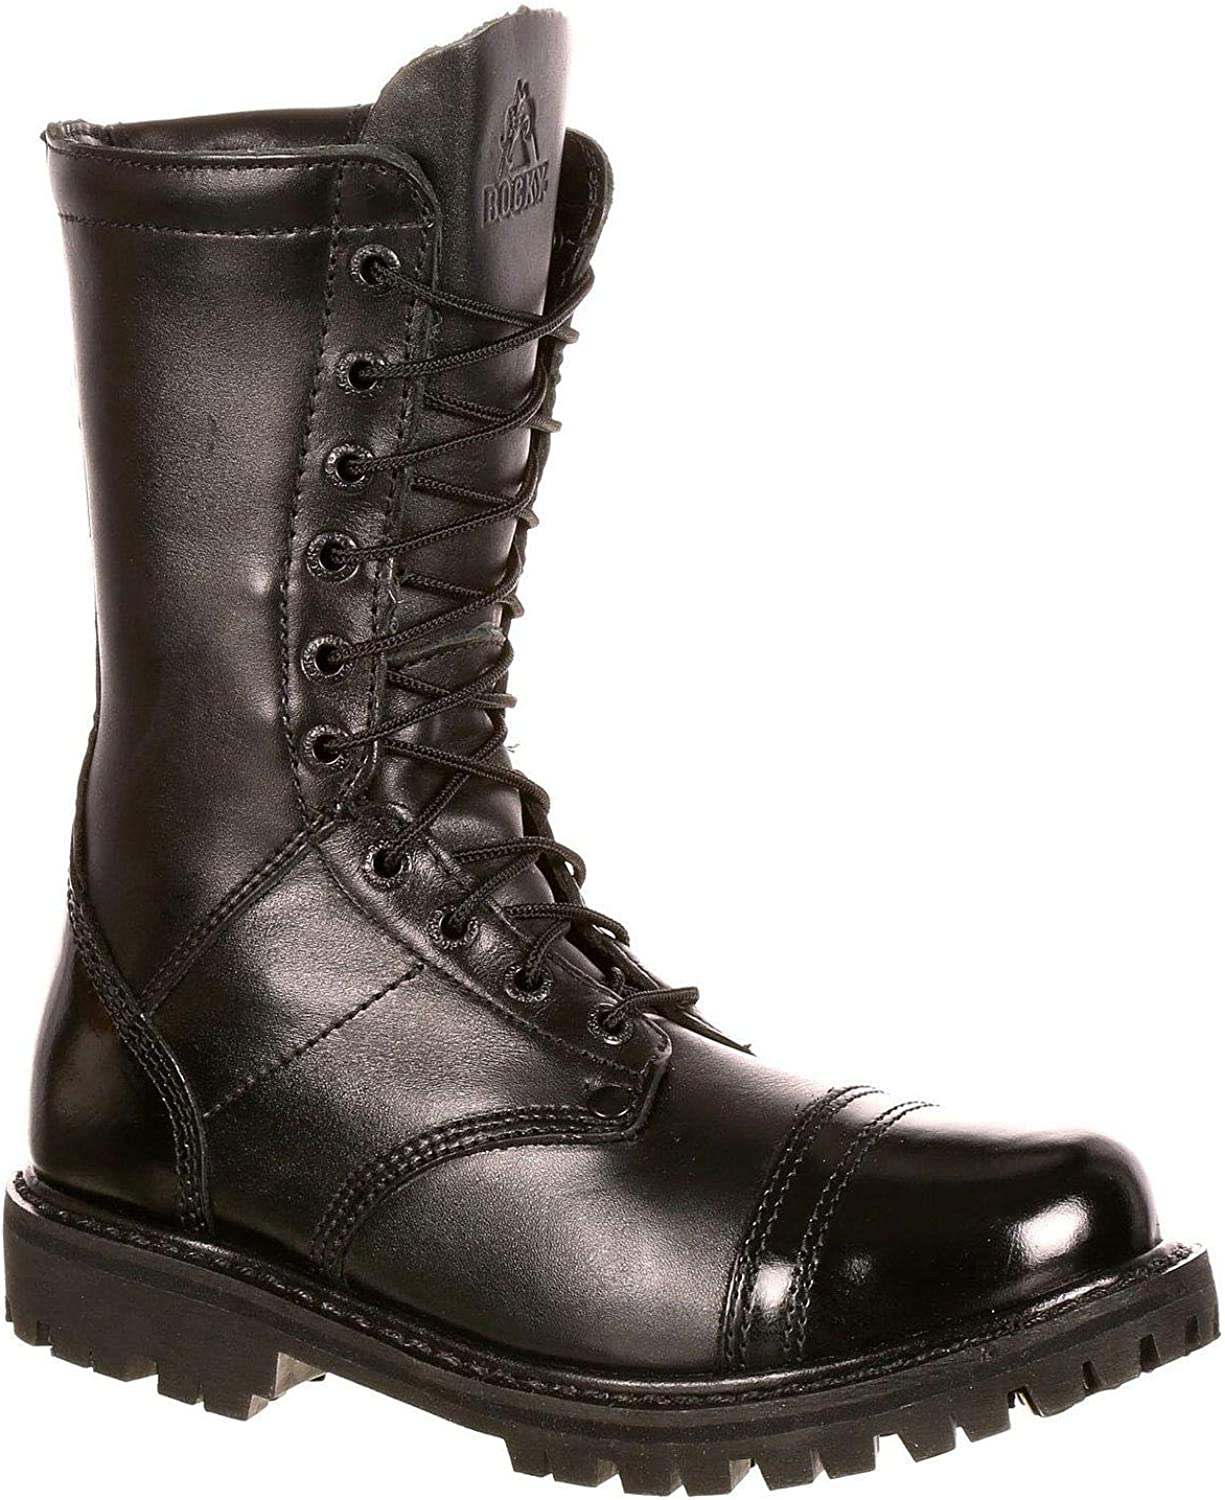 Rocky Outdoor Boots Womens Zipper Leather Tall Raven FQ0004090